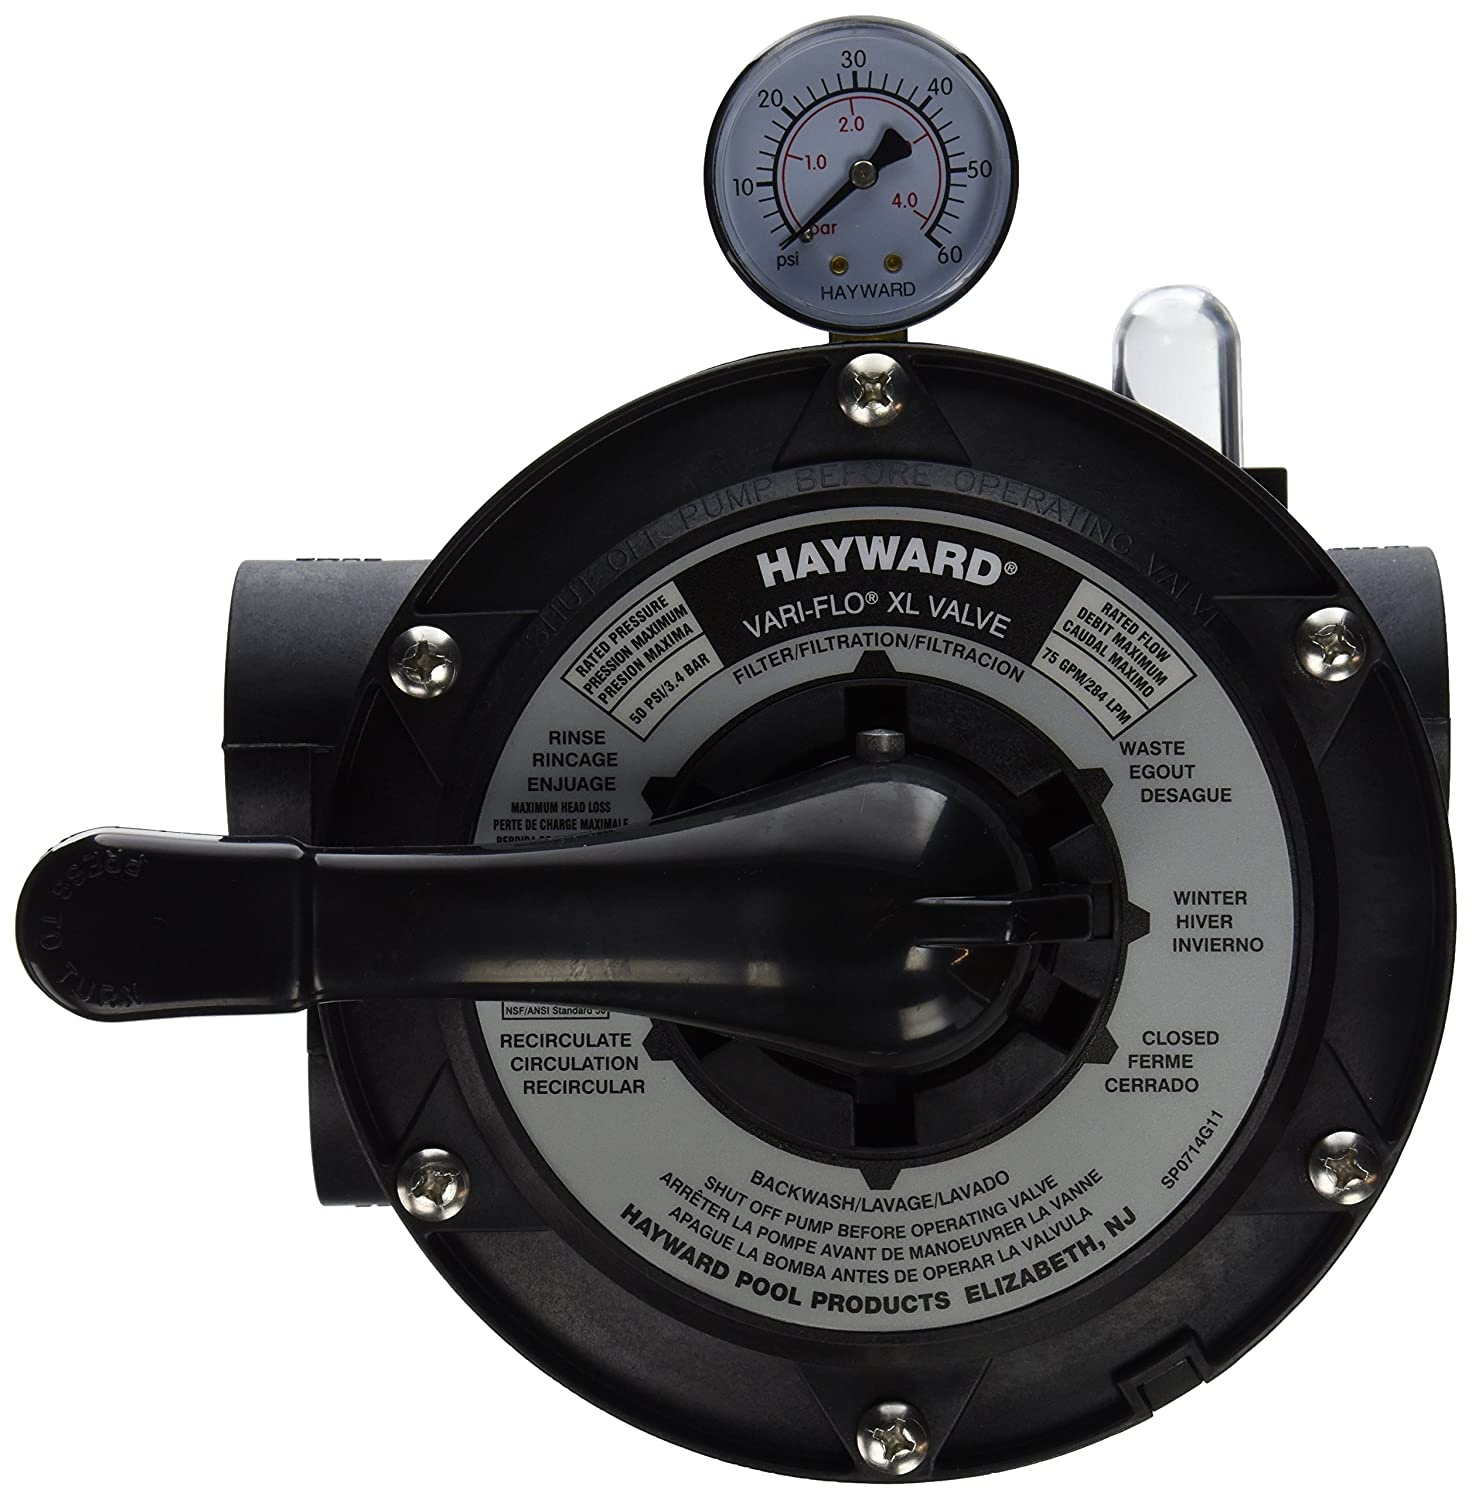 hayward vari flo xl valve owners manual